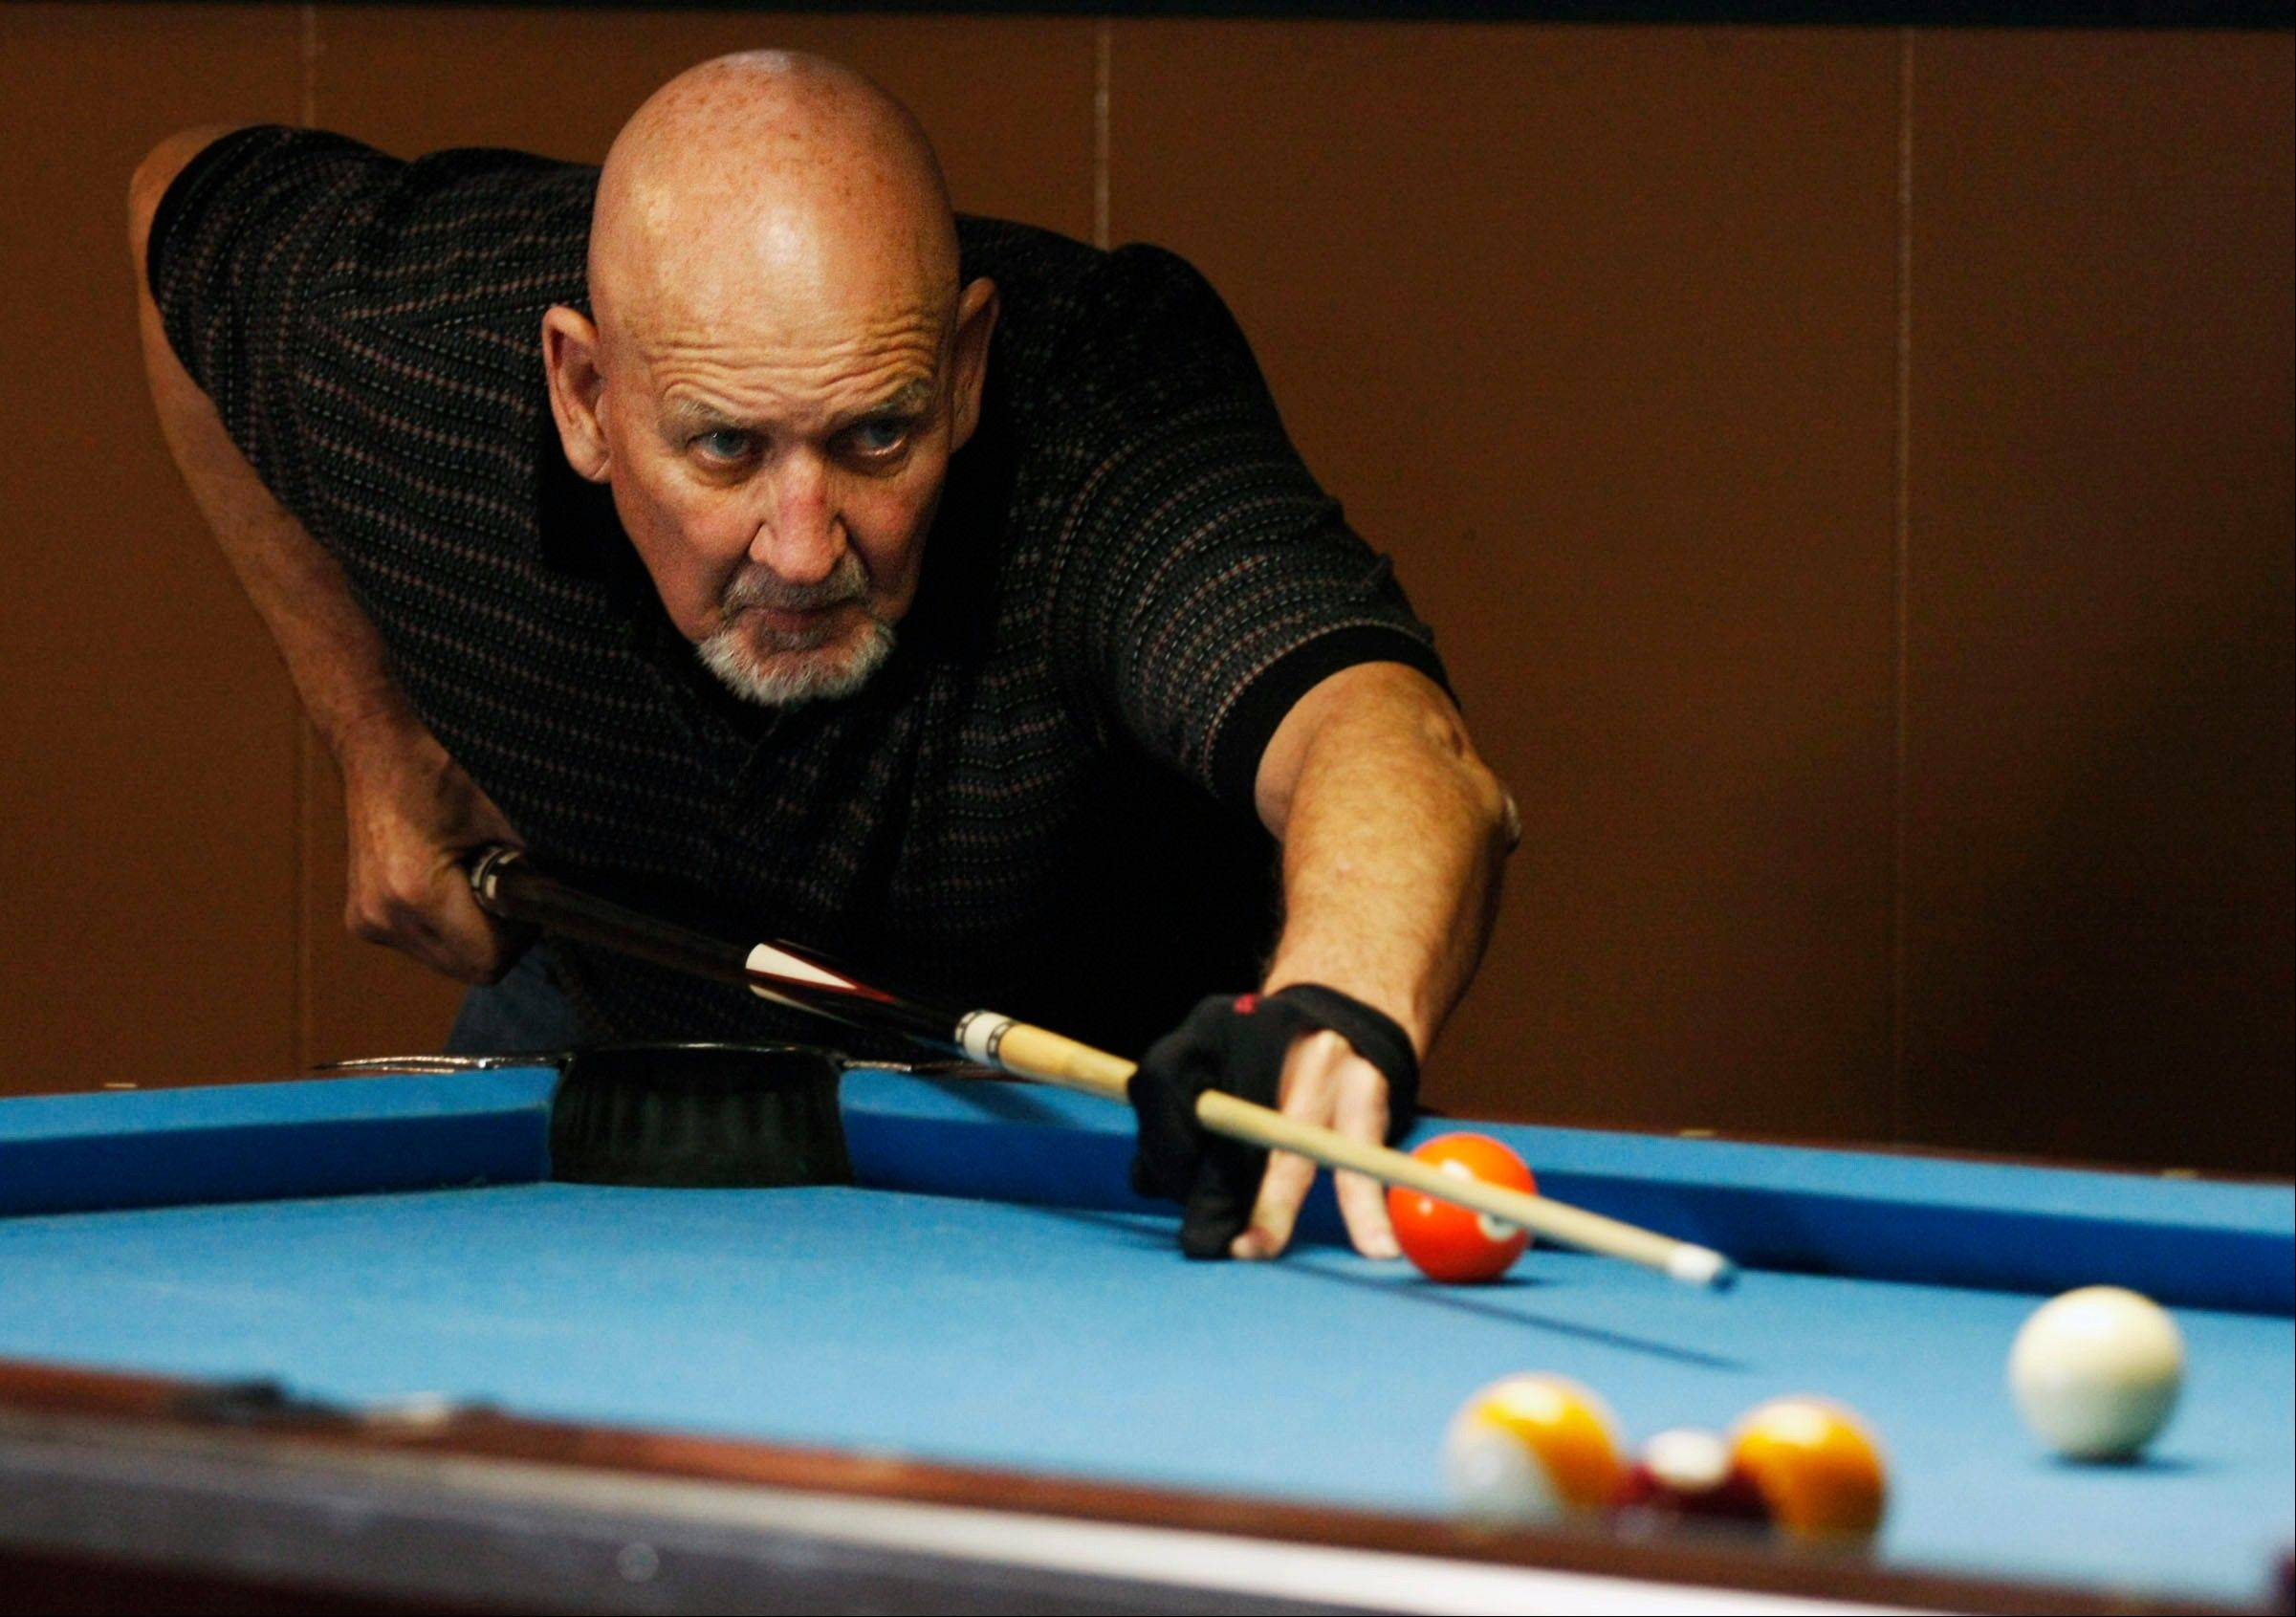 Garry Mitchell, of Findlay, competes in an American Poolplayers Association senior league game at Biggens Bar & Billiards in Decatur.